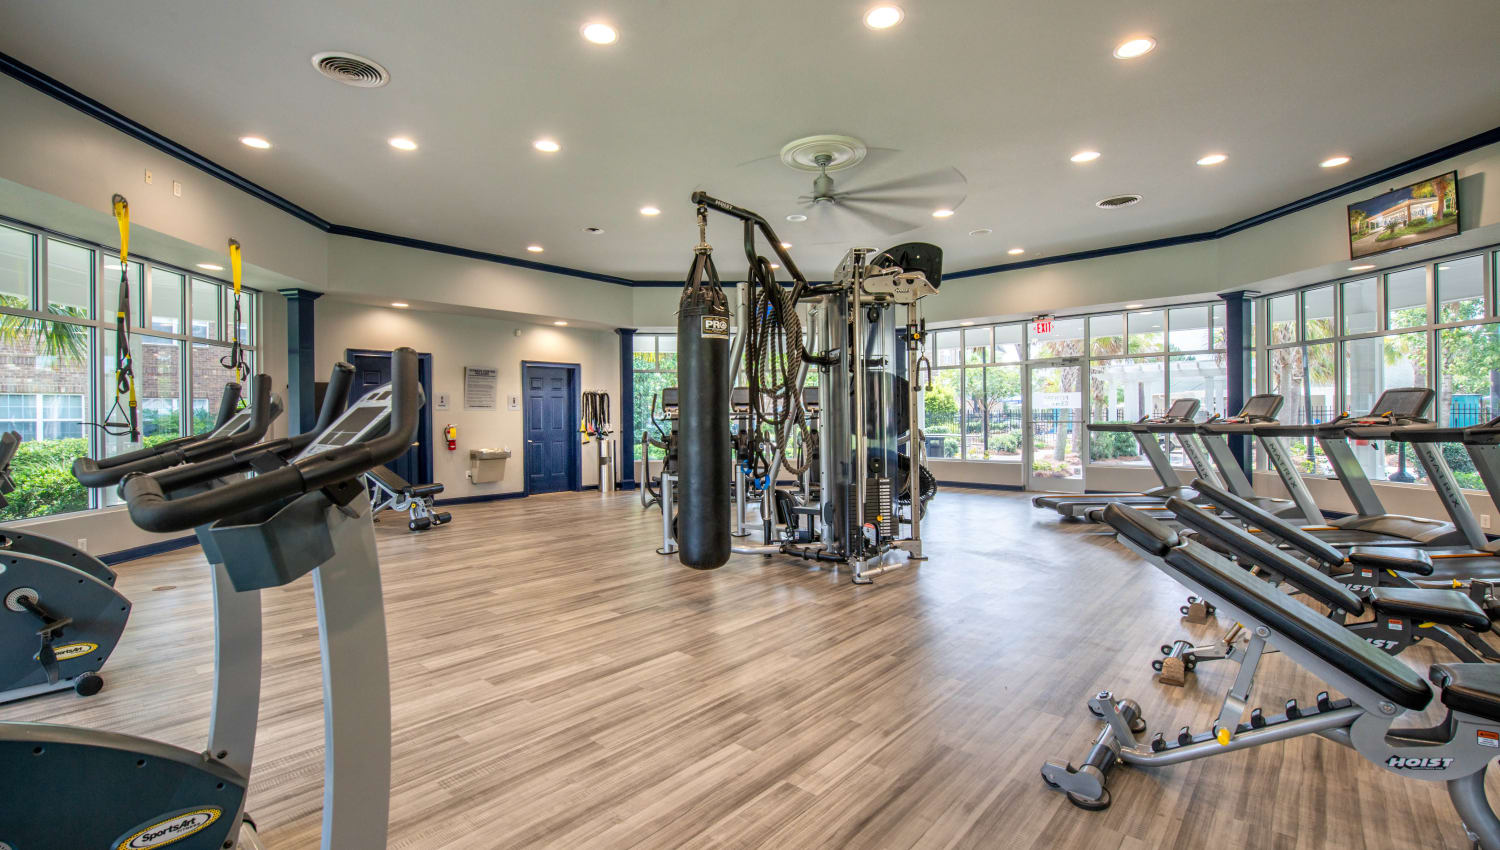 Cardio machines and exercise equipment in the fitness center at Olympus Carrington in Pooler, Georgia